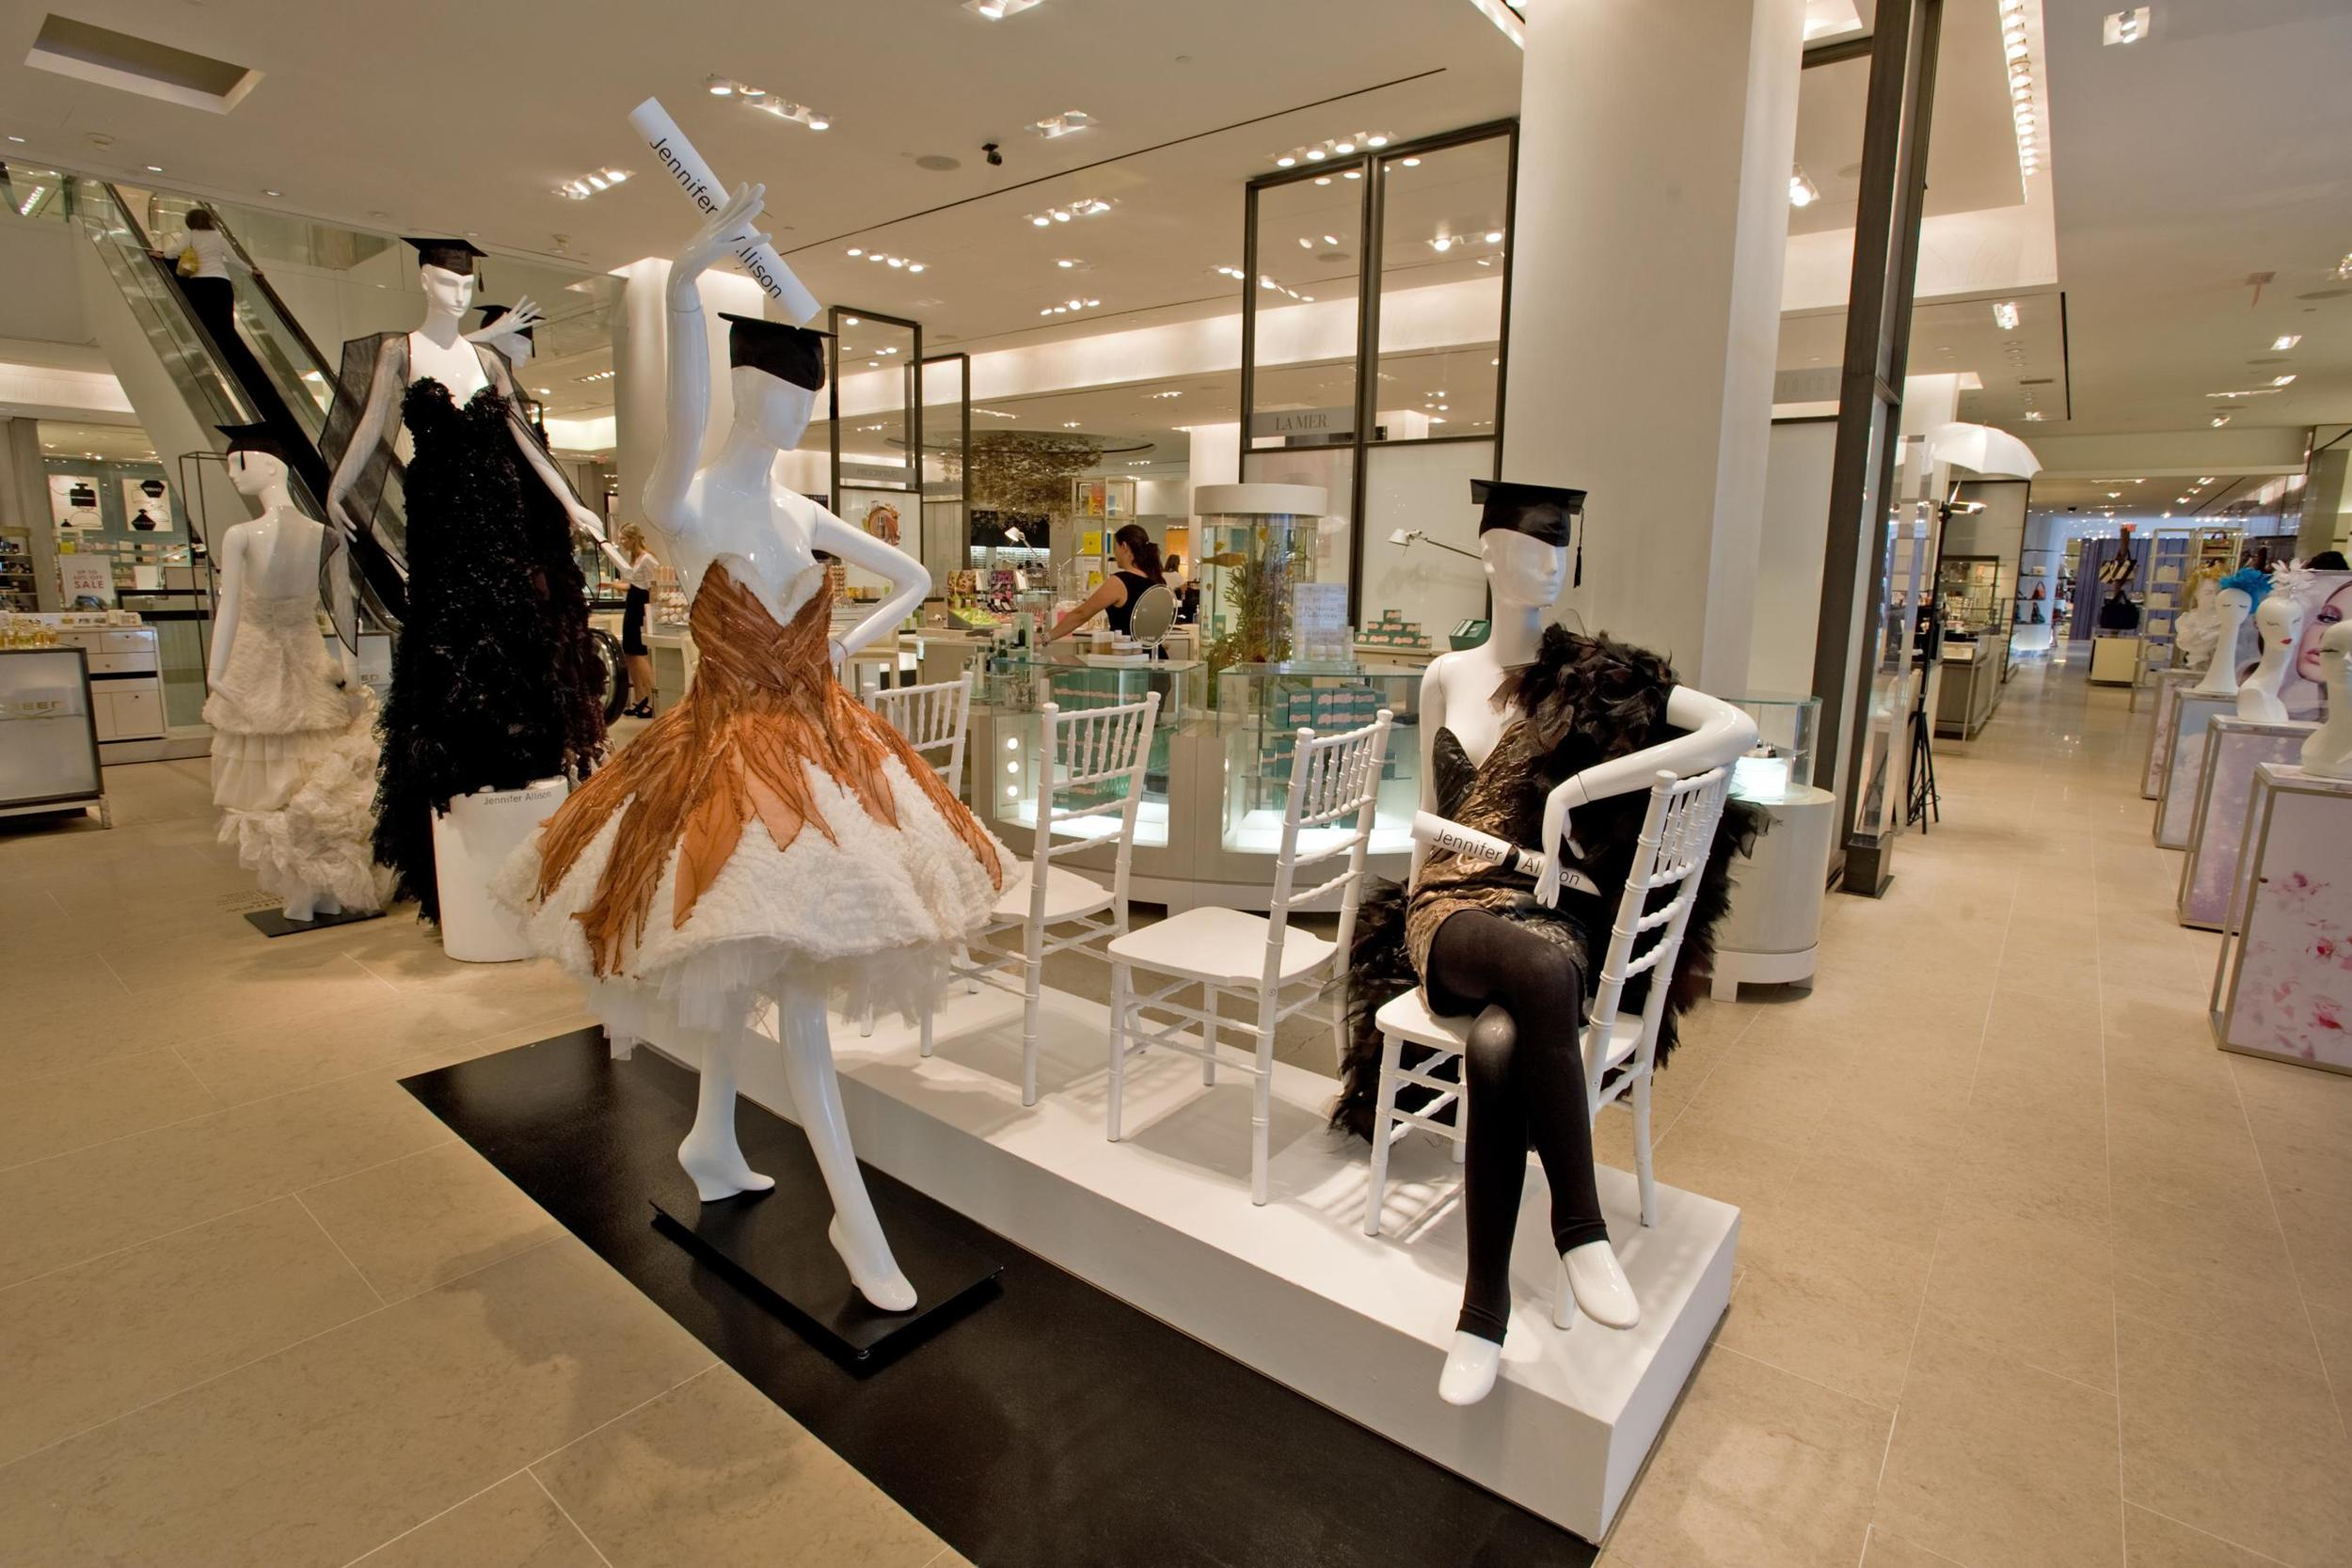 A display inside Holt Renfrew